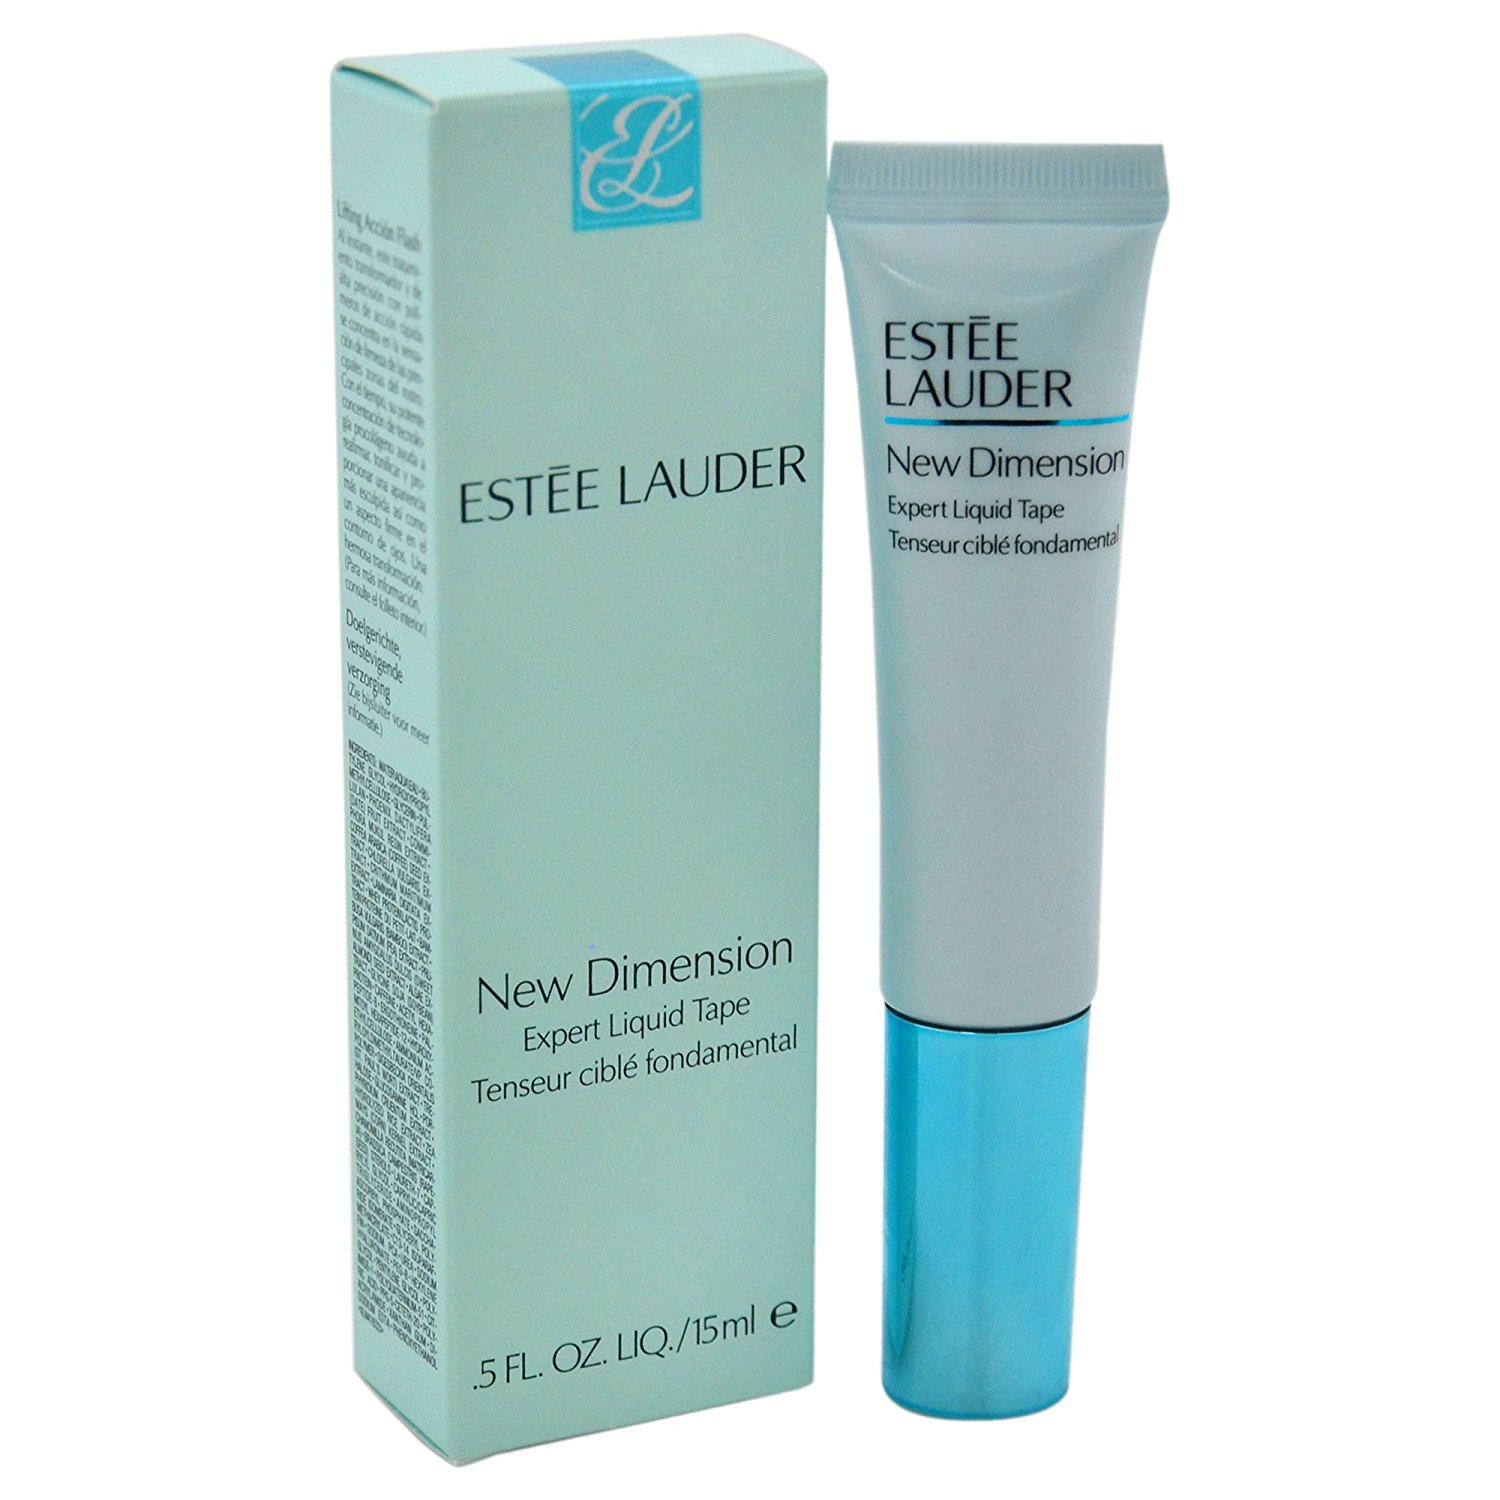 ESTEE LAUDER NEW DIMENSIONS EXPERT LIQUID TAPE CONTORNO DE OJOS 15 ML REGULAR